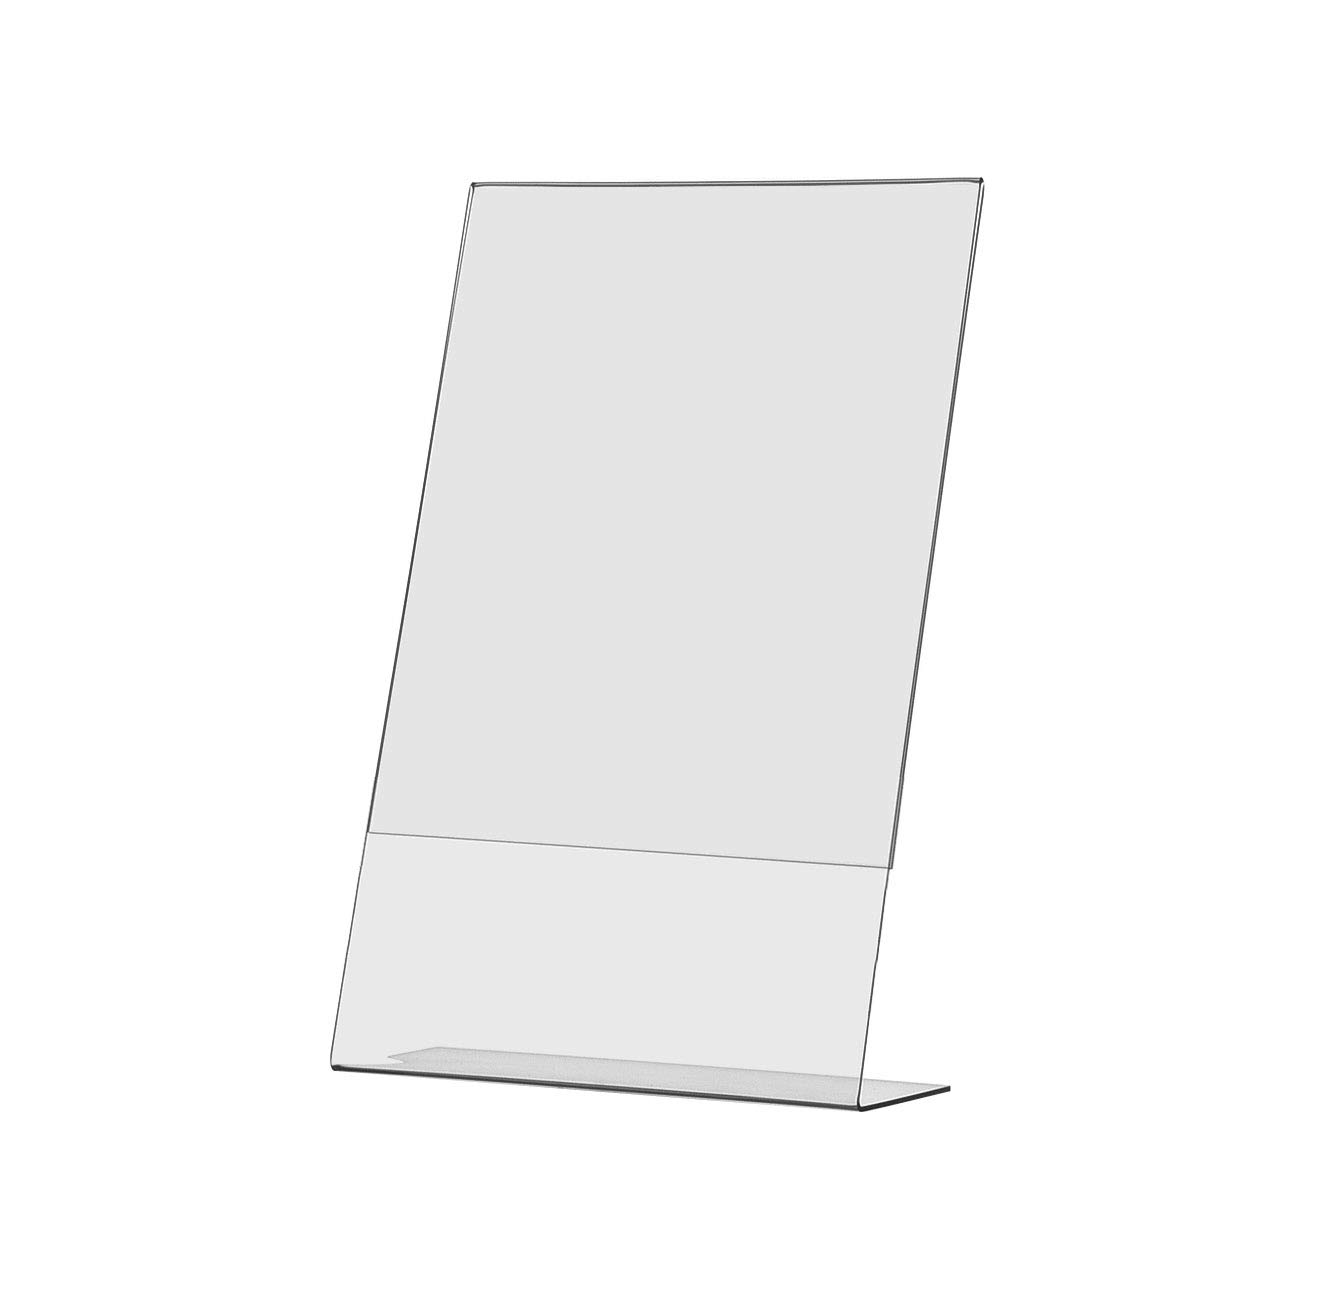 Marketing Holders Advertisement Business Display Retail Pricing Signage Restaurant Food Drink & Pricing Holder Large Price Point Sale Sign 8.5''w x 14''h Pack of 6 by Marketing Holders (Image #1)